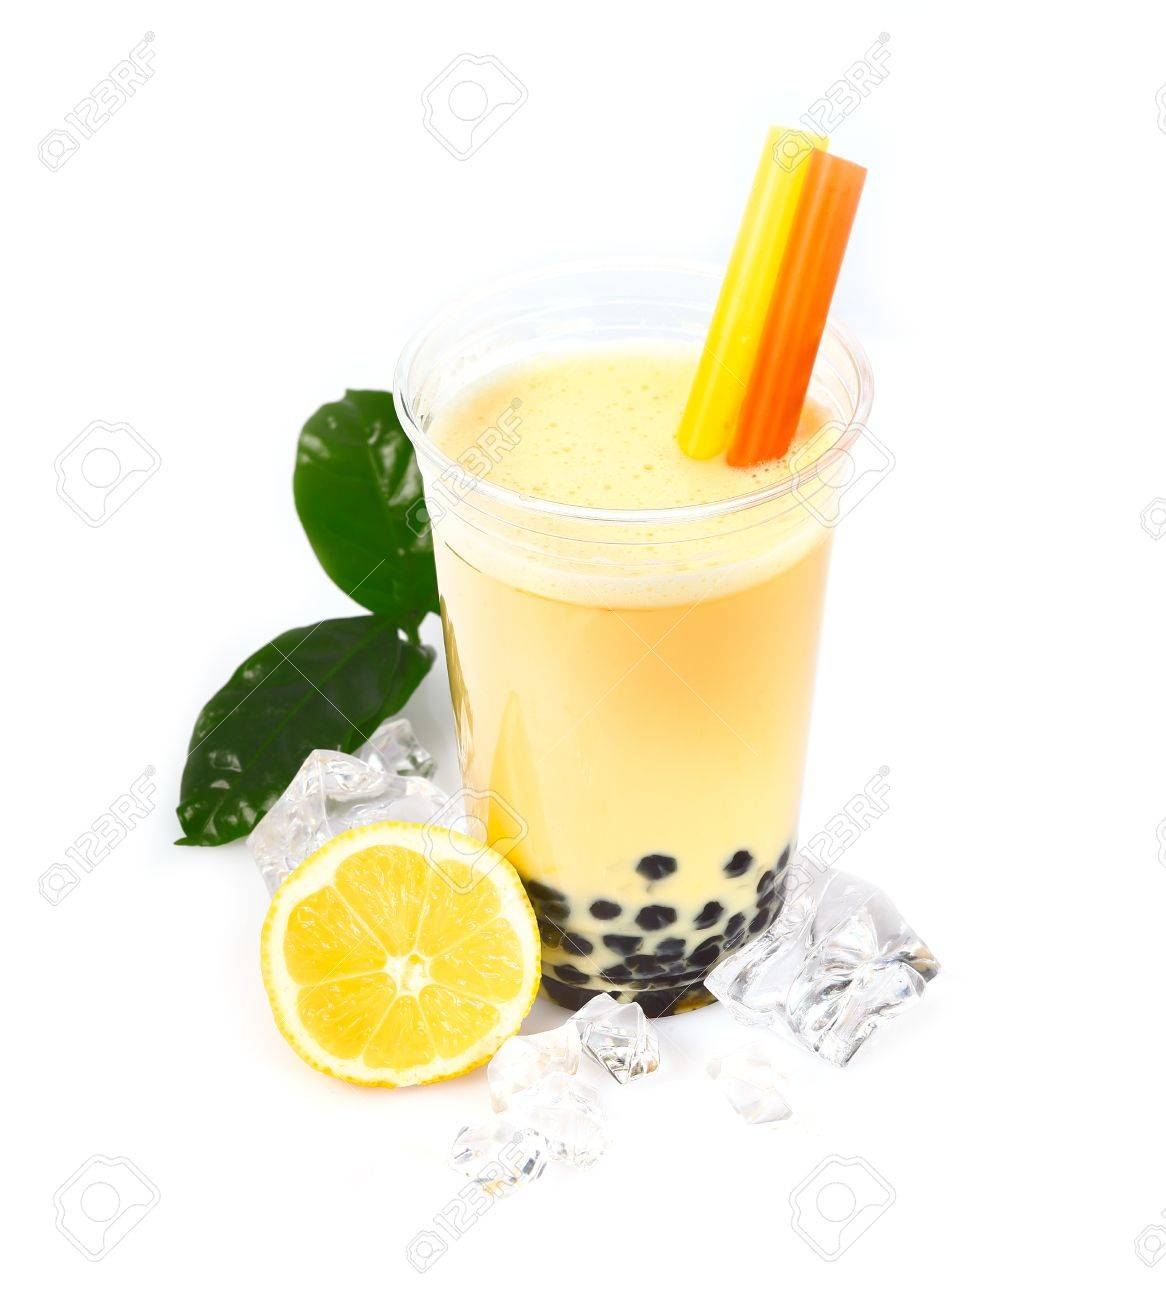 Lemon Boba Bubble Tea with fruits and crushed ice Stock Photo - 14167999